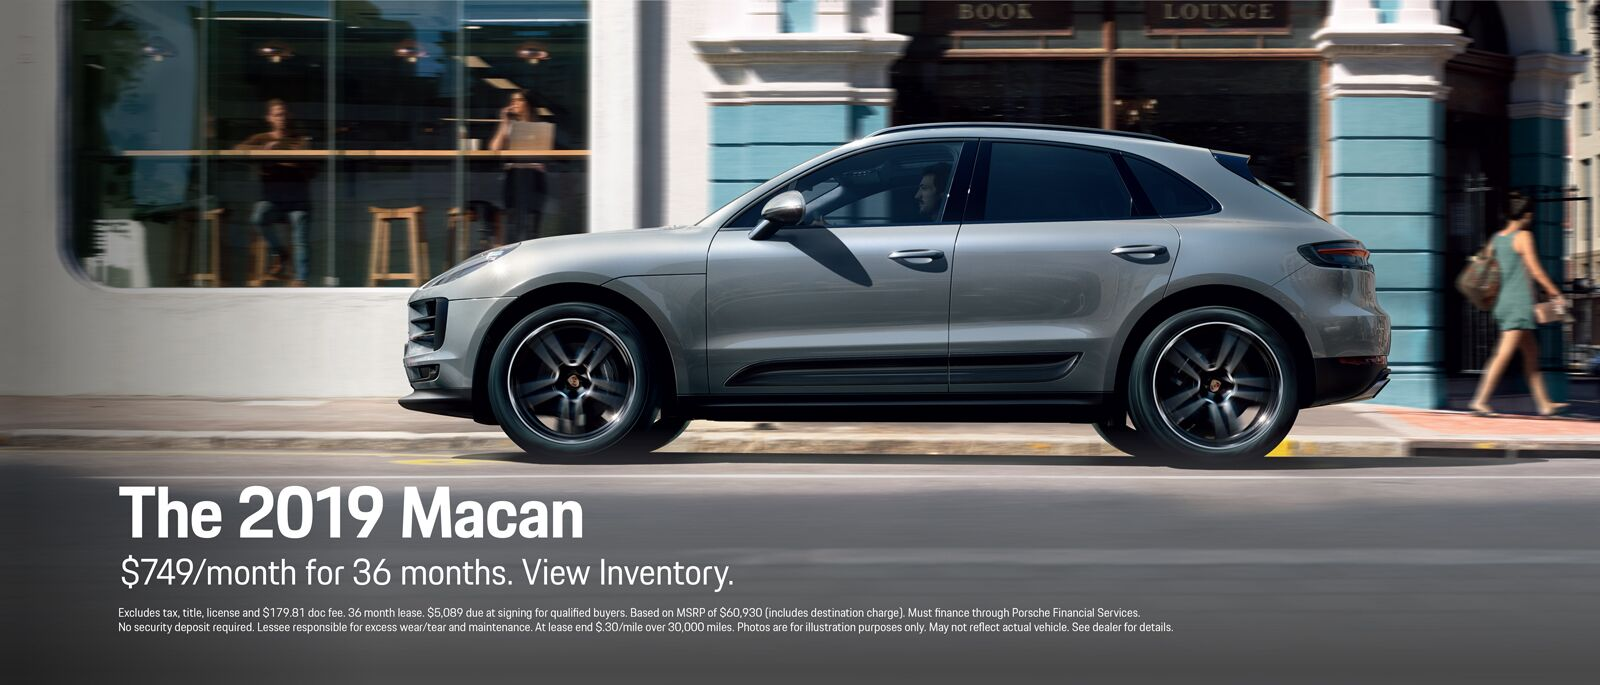 2019 Panamera Macan Lease Offer